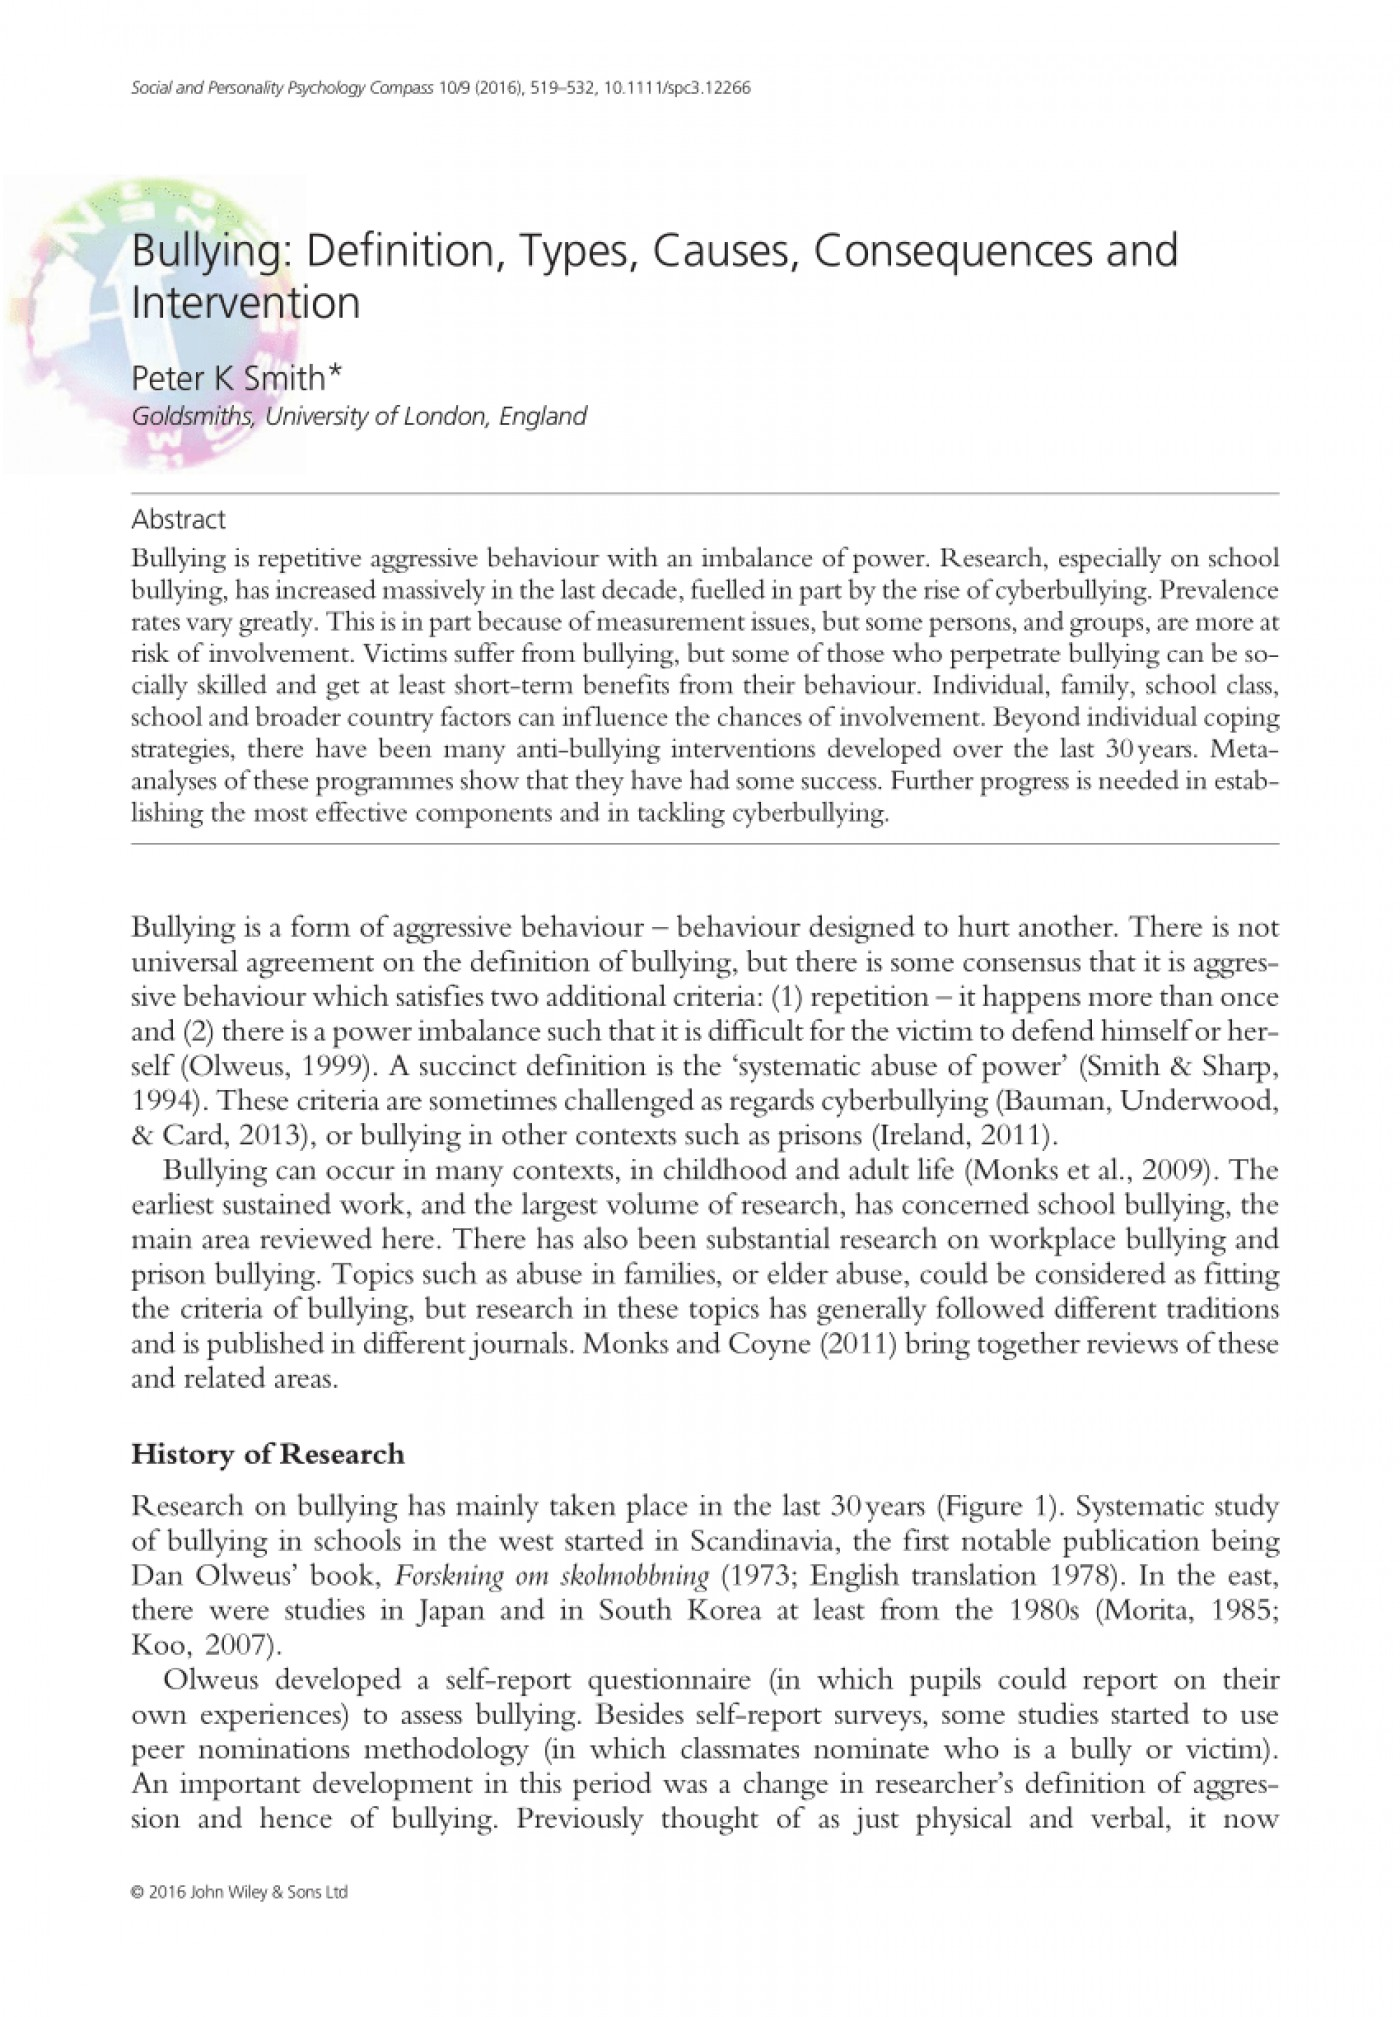 002 Largepreview Bullying Research Paper Imposing Pdf Short About Quantitative Effects Of 1400